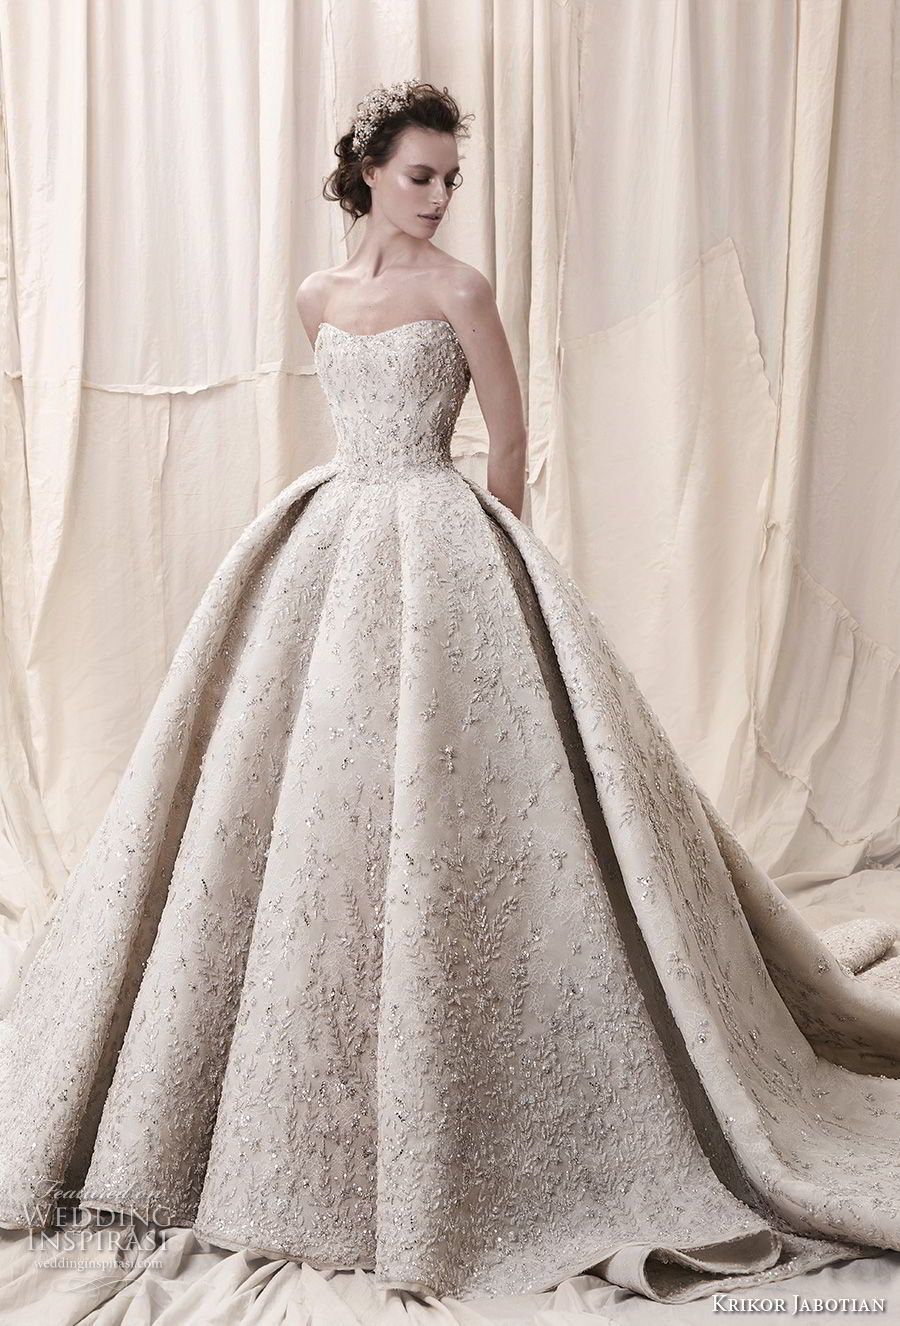 6339fea625939 krikor jabotian spring 2018 bridal straplss semi sweetheart neckline full  embellishment glamorous princess ball gown a line wedding dress open back  royal ...